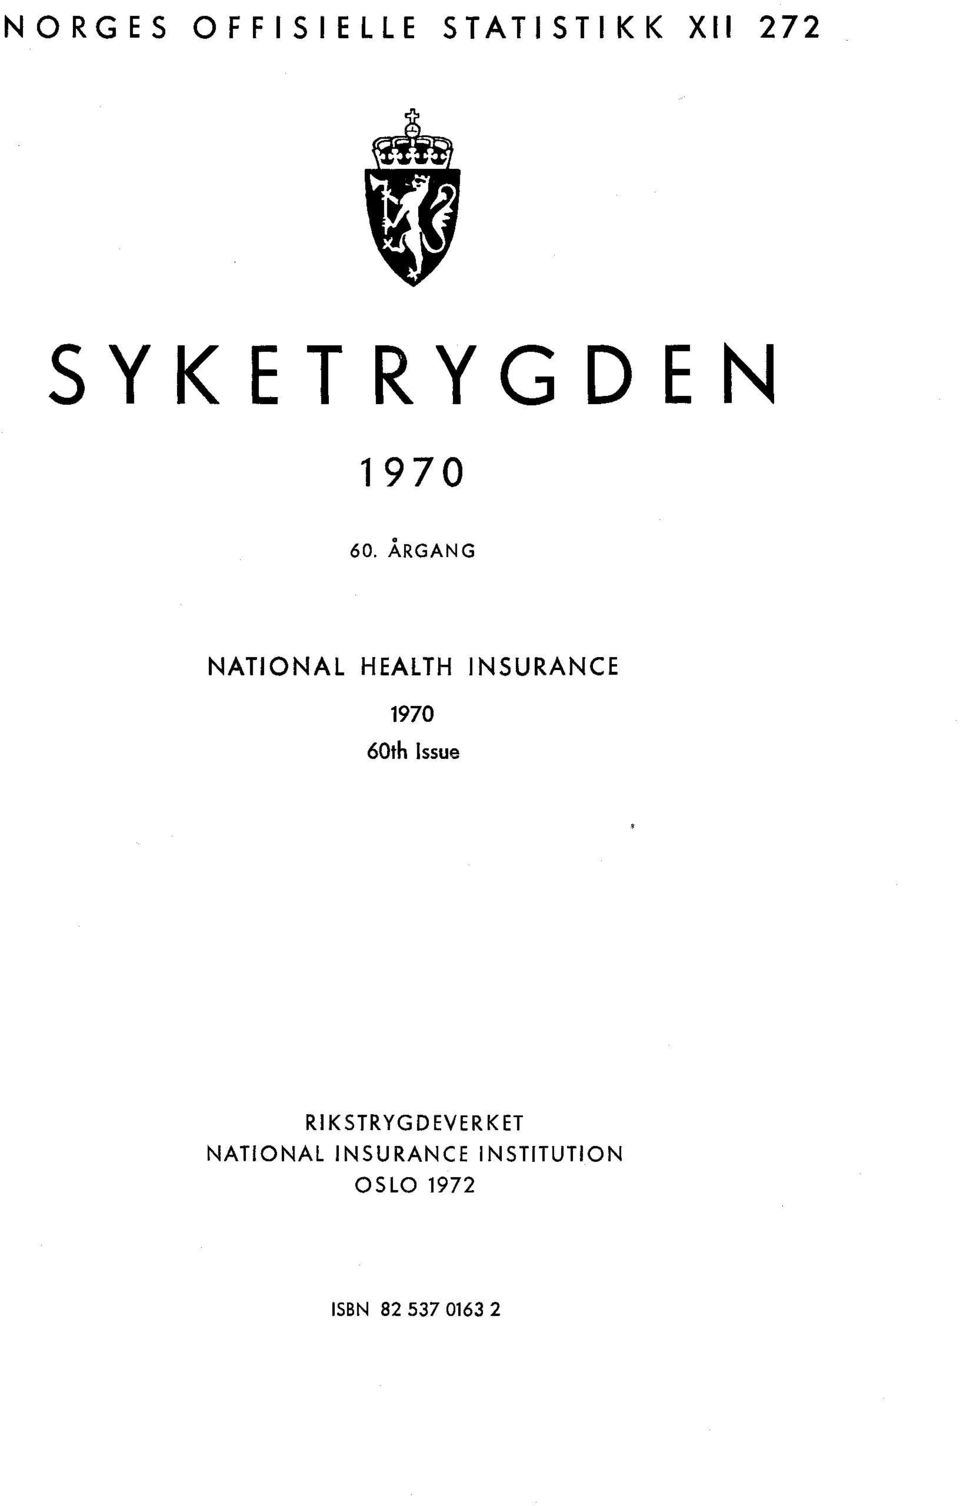 ÅRGANG NATIONAL HEALTH INSURANCE 1970 60th